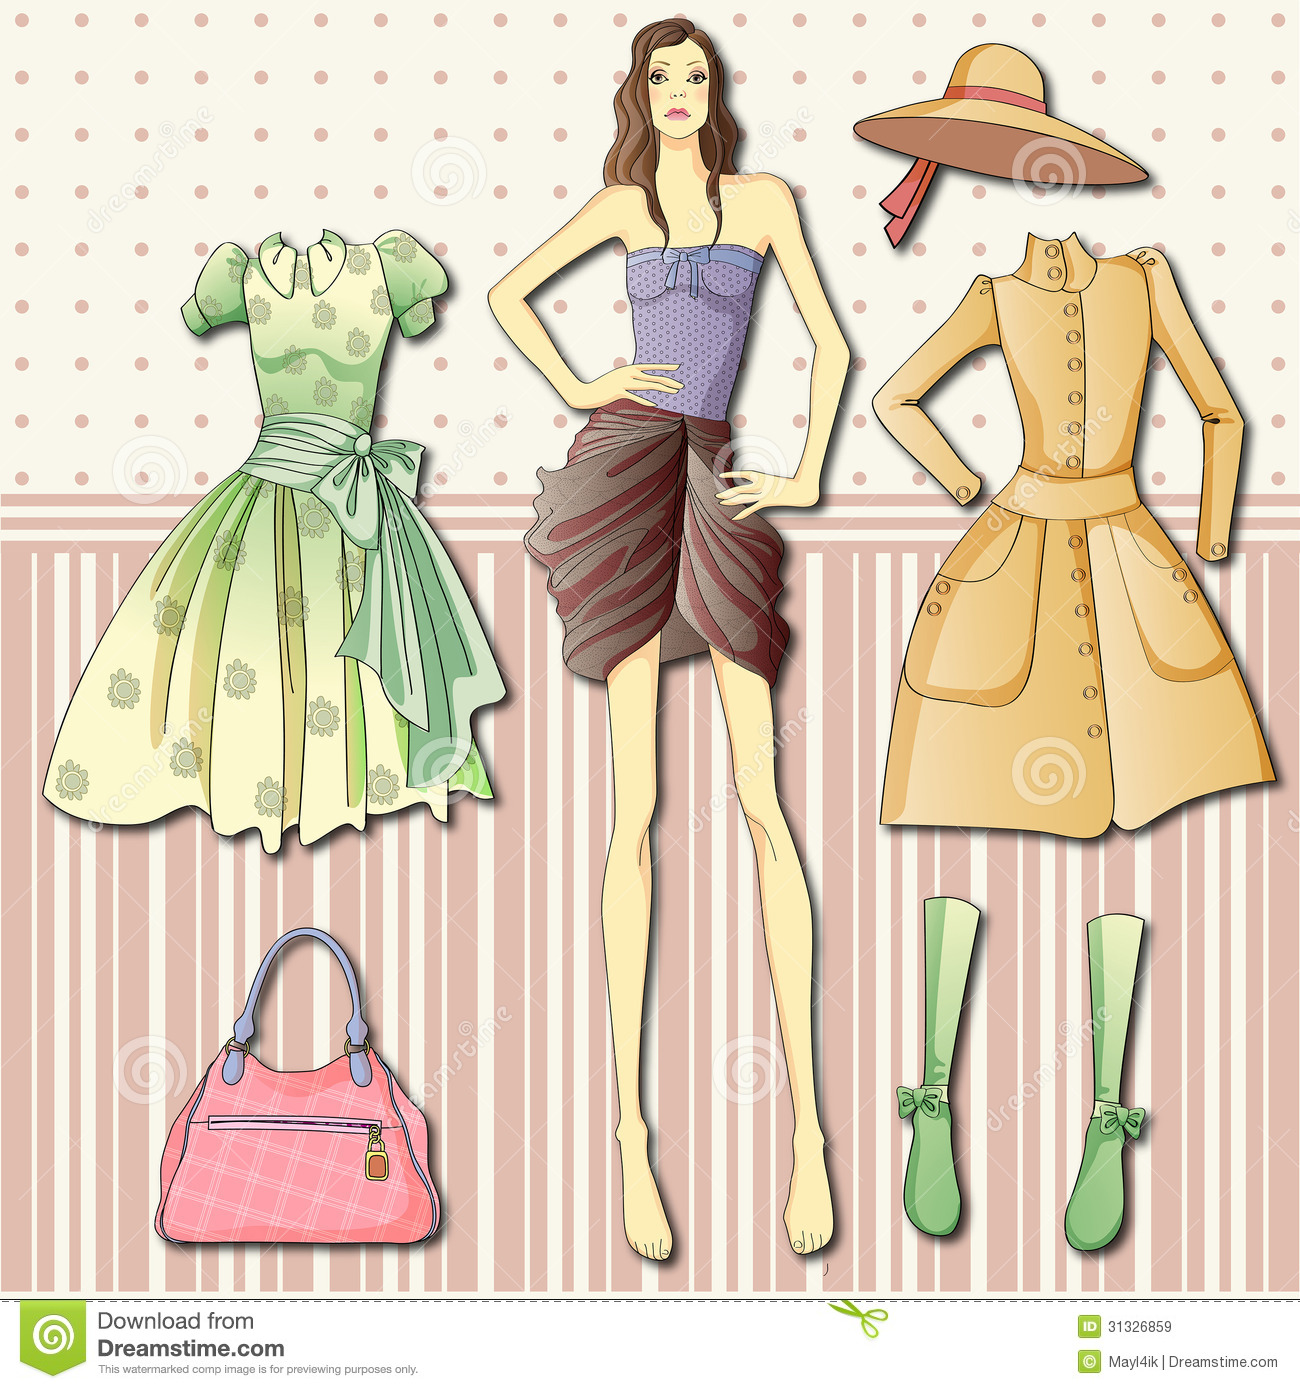 Paper Doll With Clothes Royalty Free Stock Images - Image: 31326859